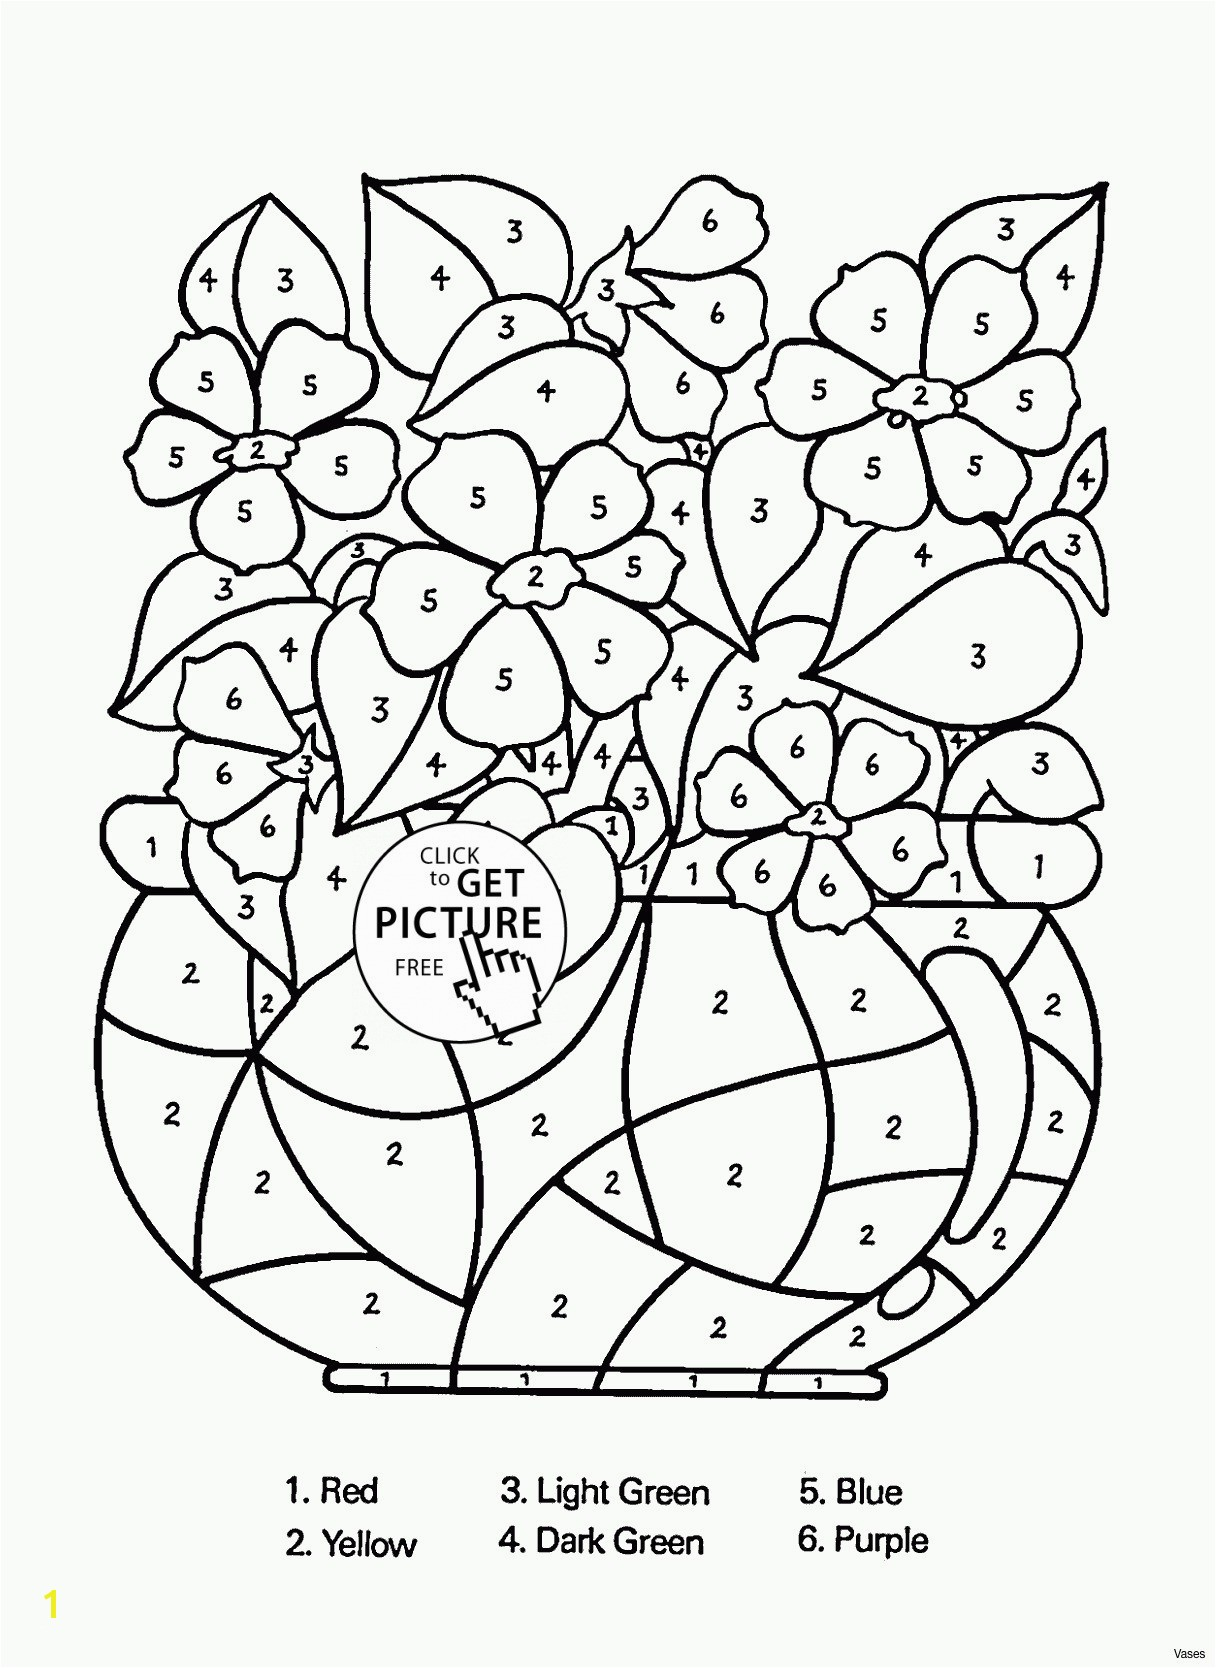 Coloring Pages For Kids To Print Out Printable Kids Coloring Pages Fresh Printable Coloring 0d Archives